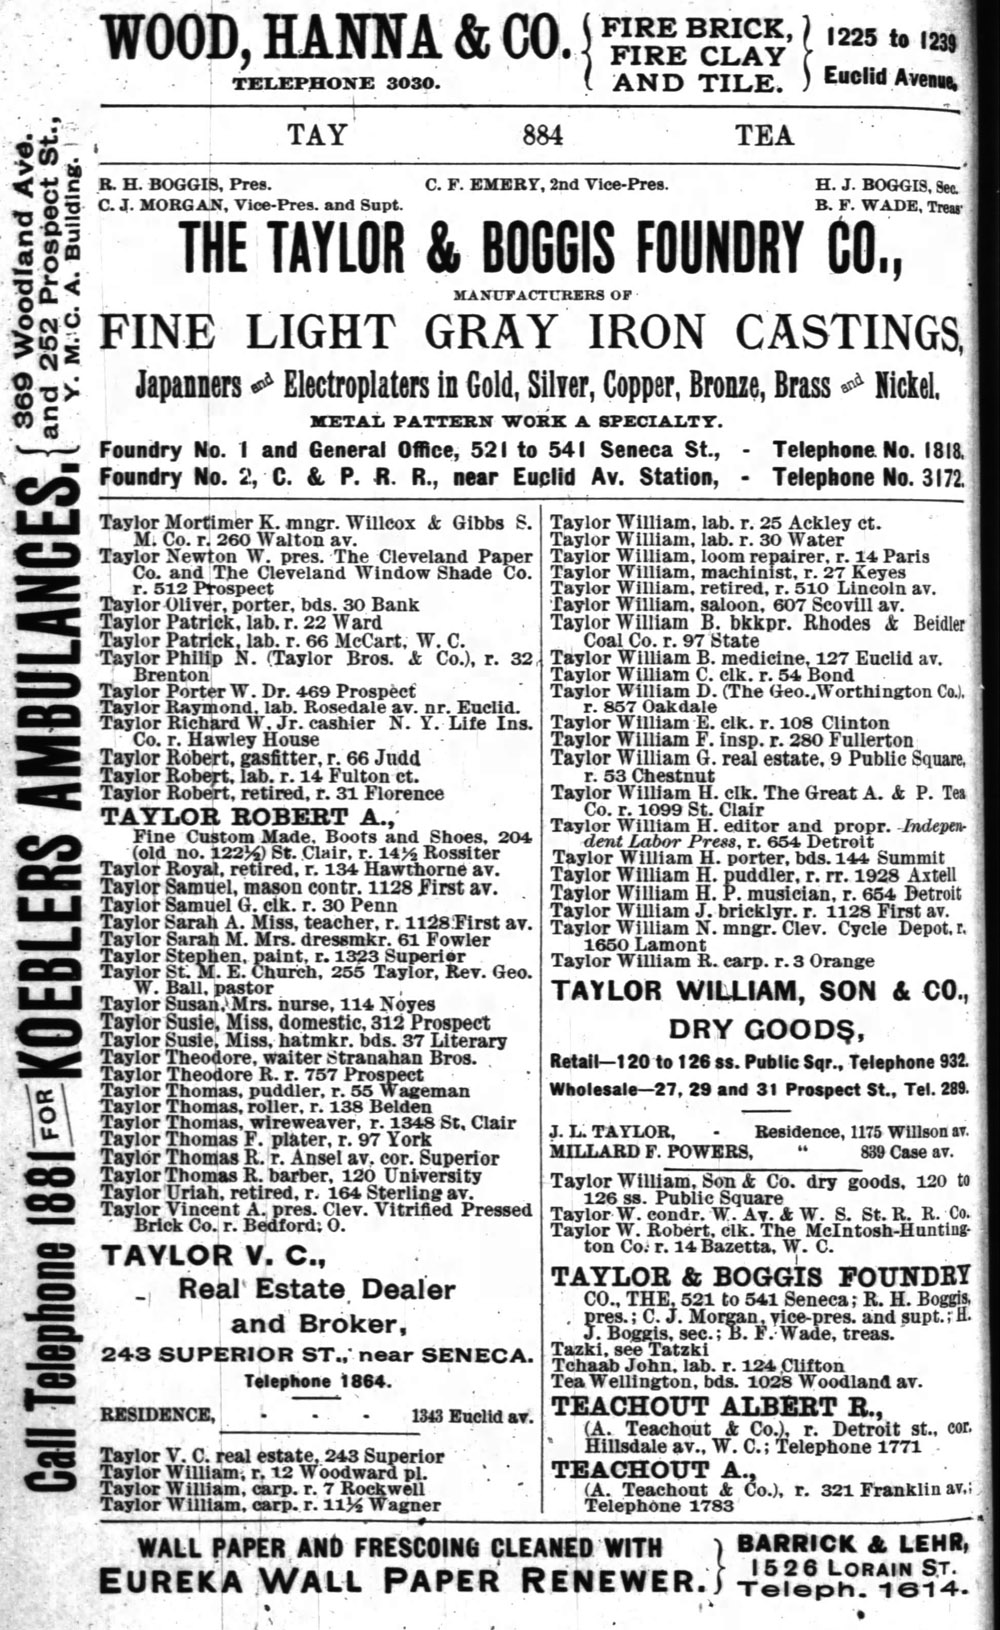 1891 City Directory for Cleveland, Ohio (p.884)